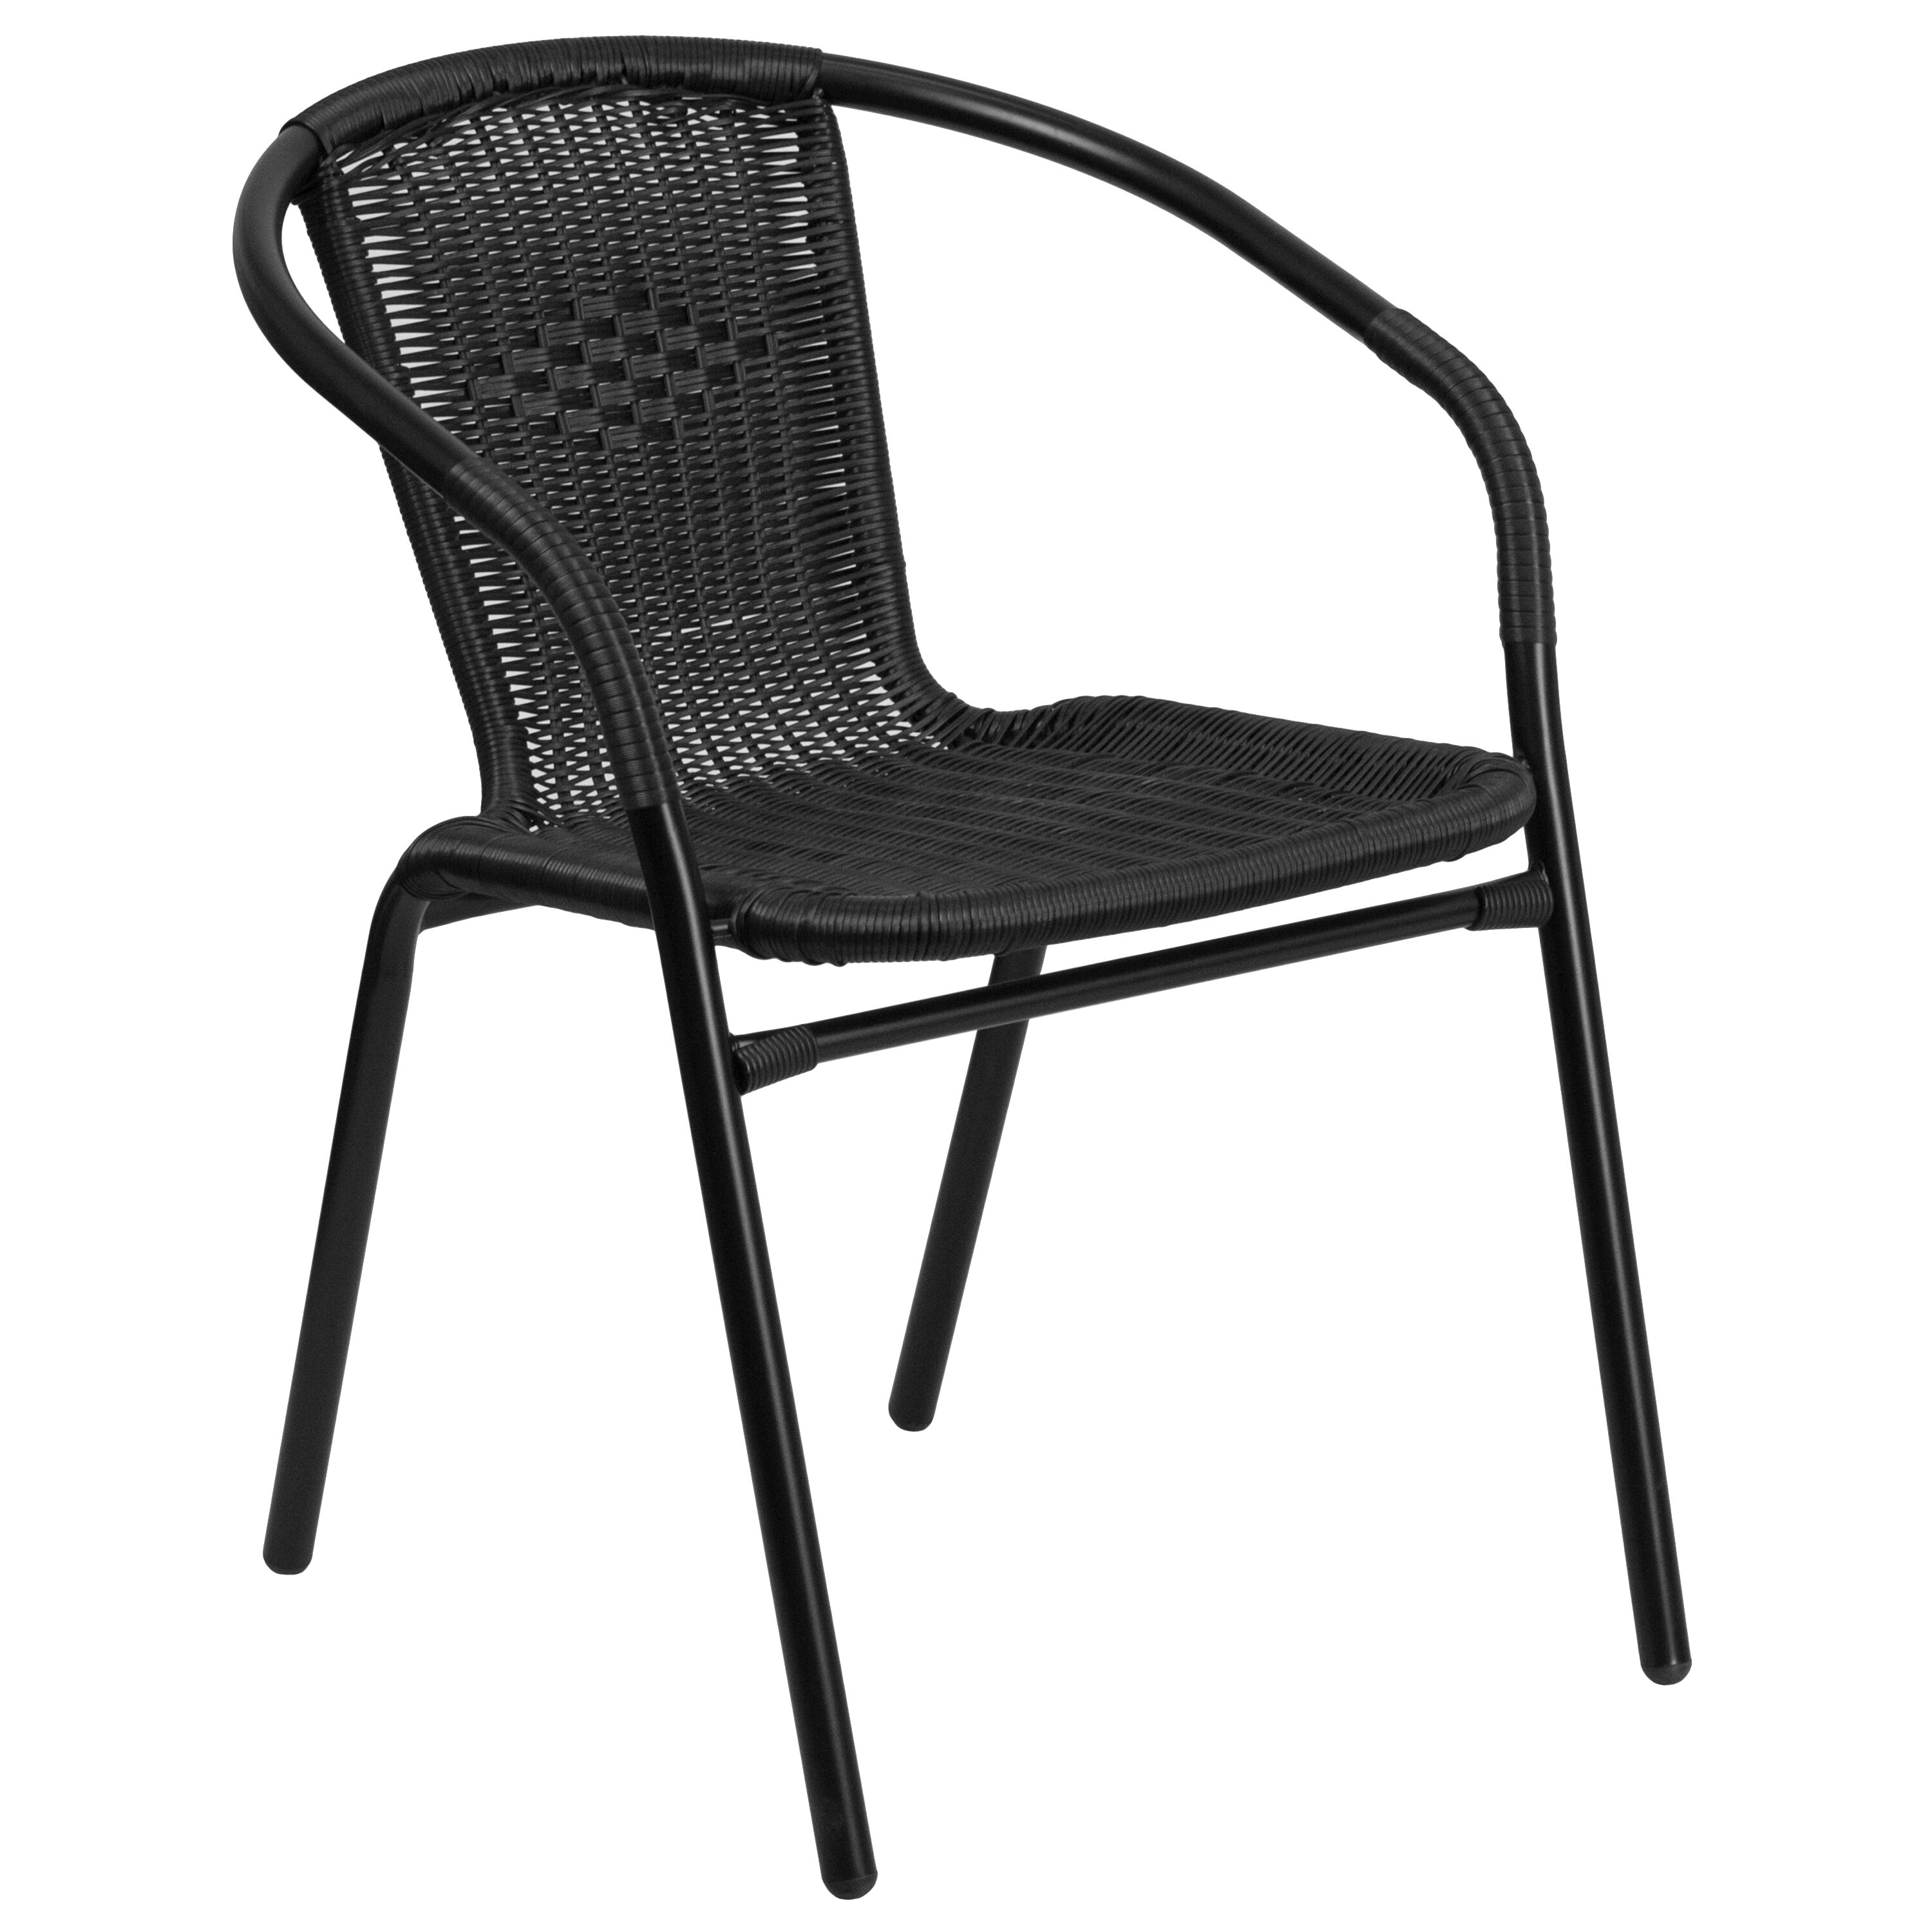 ... Our Black Rattan Indoor Outdoor Restaurant Stack Chair Is On Sale Now.